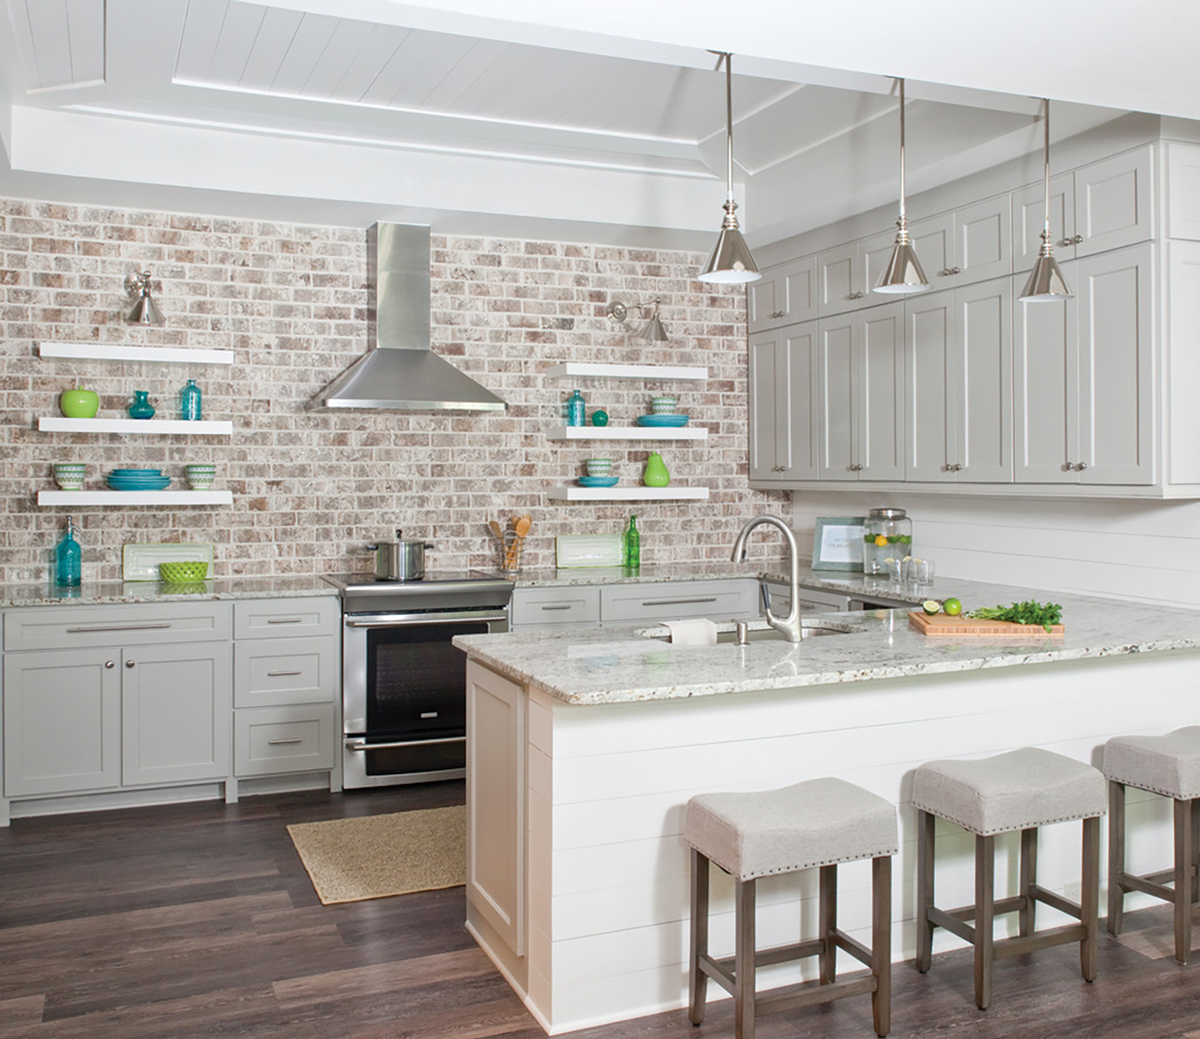 Shelves For Kitchen Cabinets: Kitchen Cabinets? Or Open Shelving? We Asked An Expert For